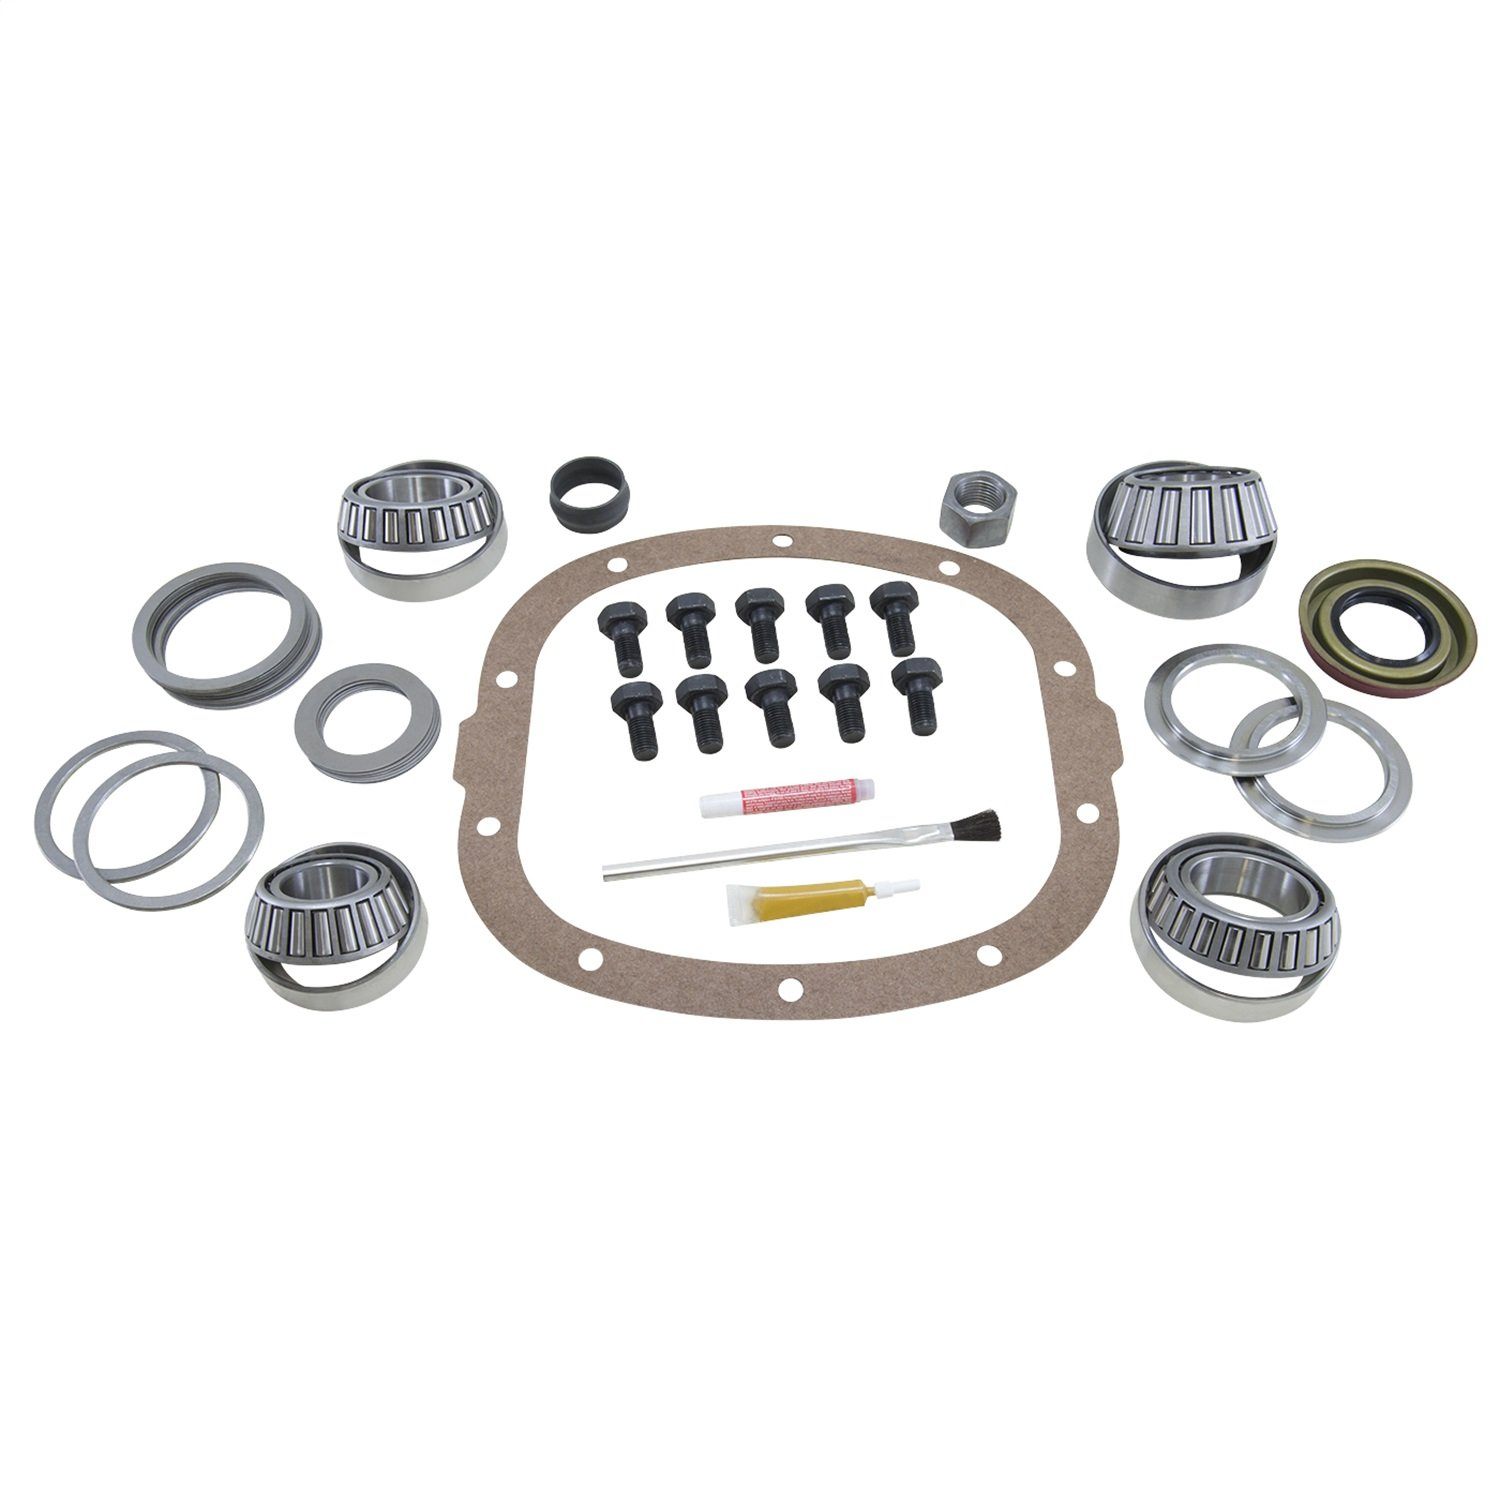 USA Standard Gear (ZK GM7.5-C) Master Overhaul Kit for GM 7.5/7.625 Differential